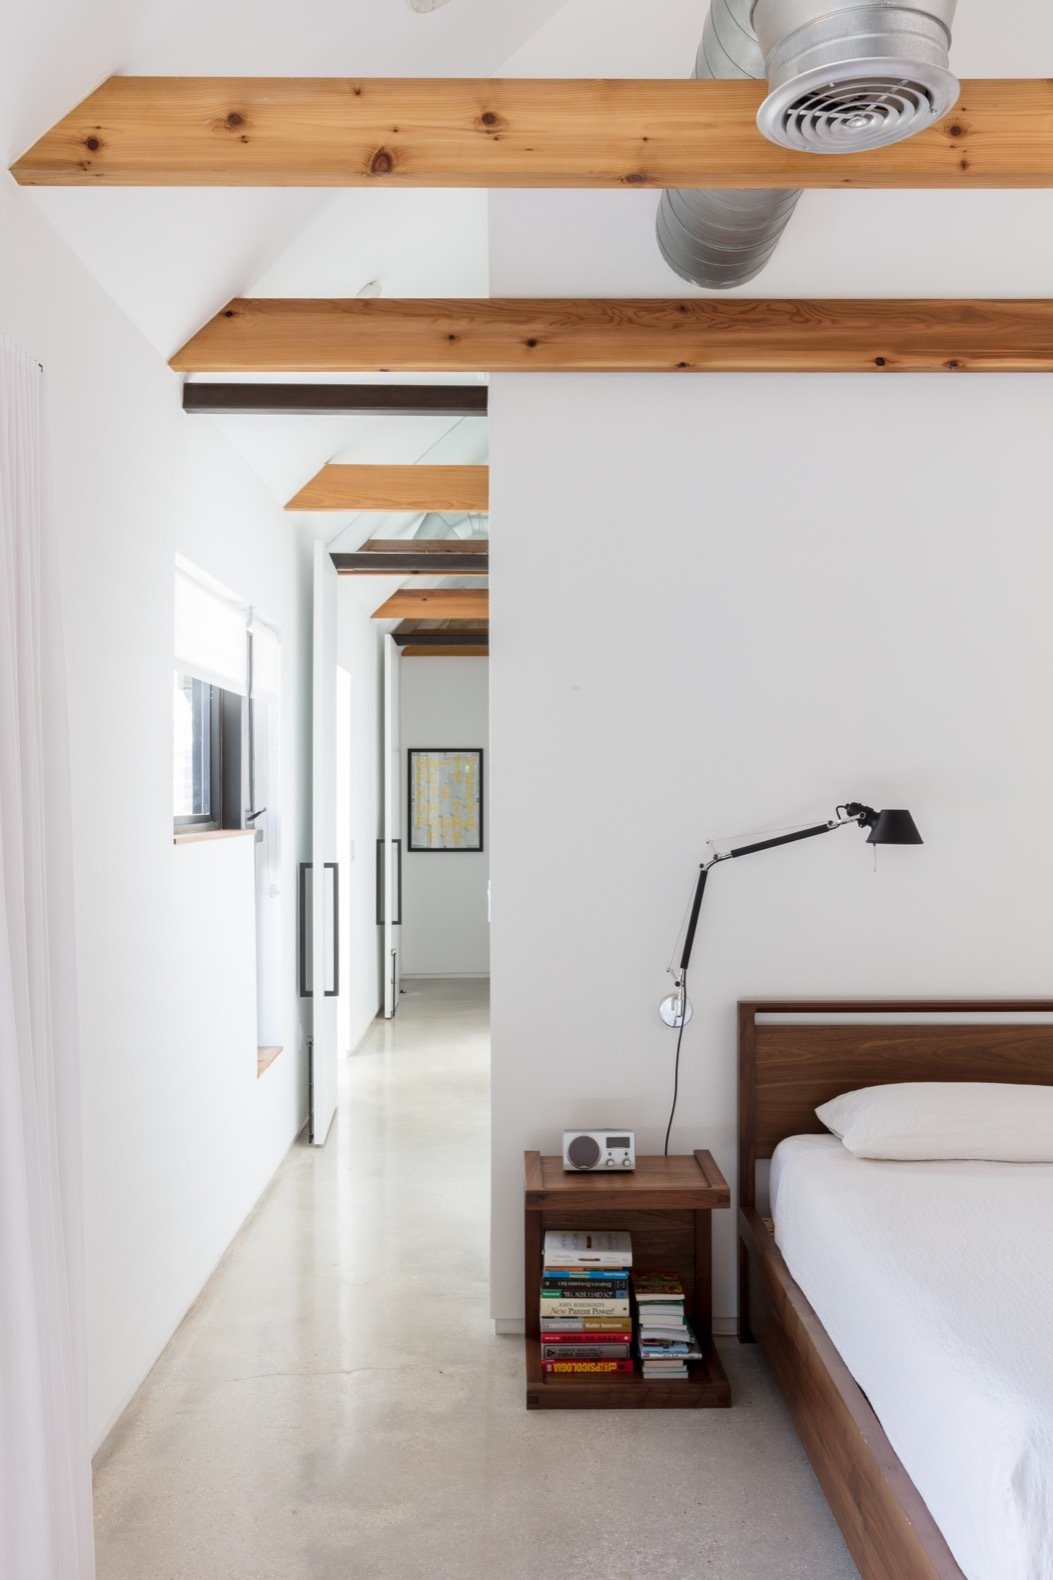 Bedroom, Wall, Bed, Concrete, and Night Stands The new addition features polished concrete floors throughout.   Best Bedroom Bed Concrete Wall Night Stands Photos from A Minimalist Bungalow in Miami Welcomes a Sleek New Addition